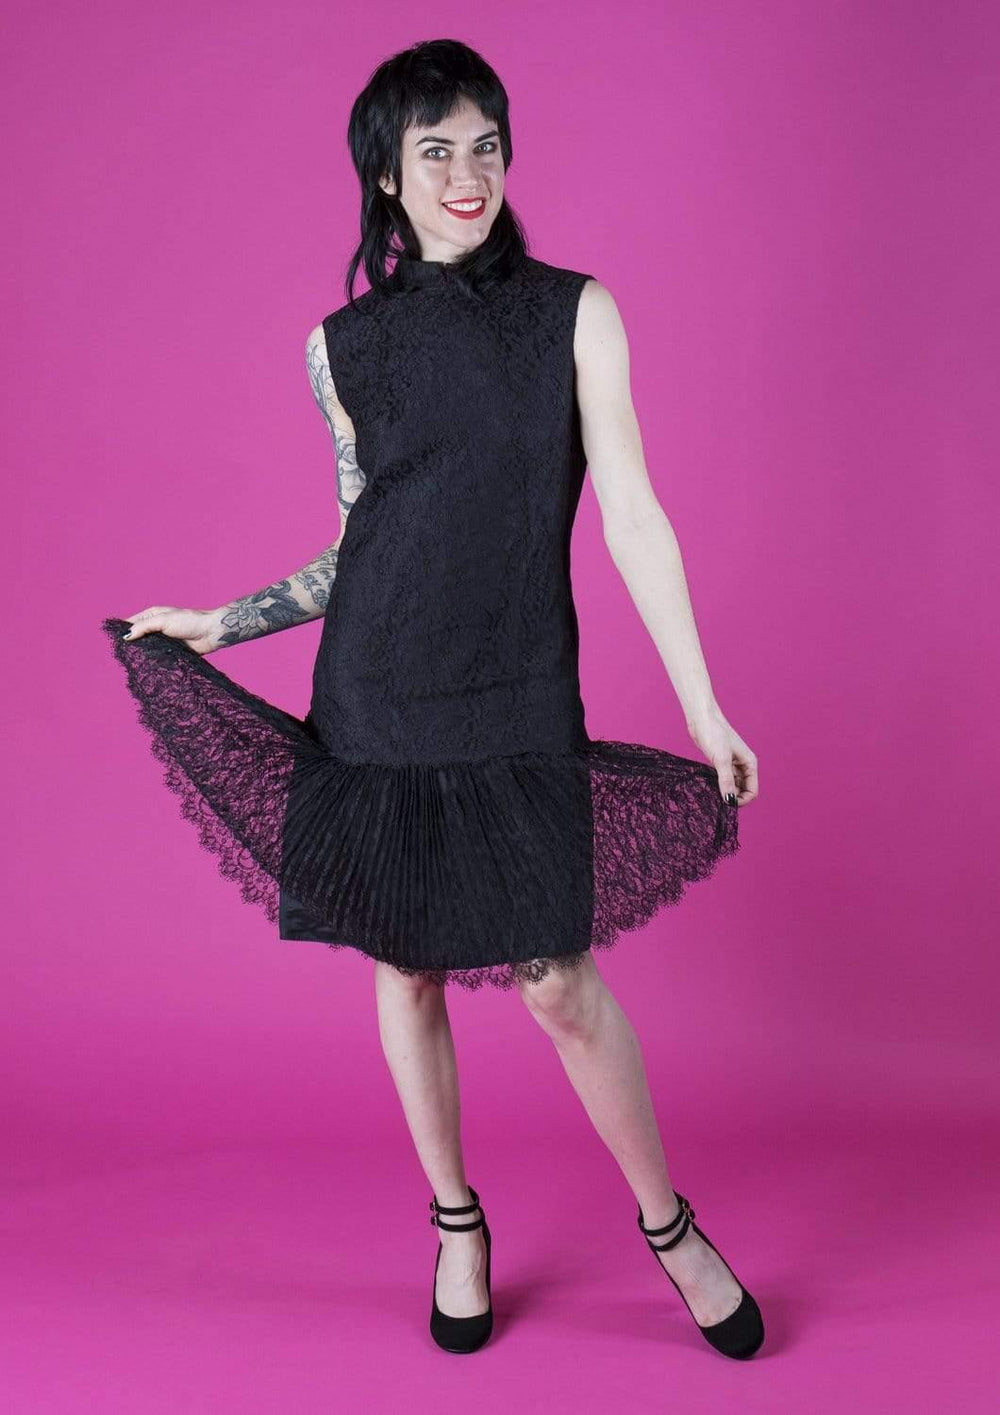 House of Strut DRESSES Black Lace Sleeveless Mod Dress w/ Pleated Trim by The Collection